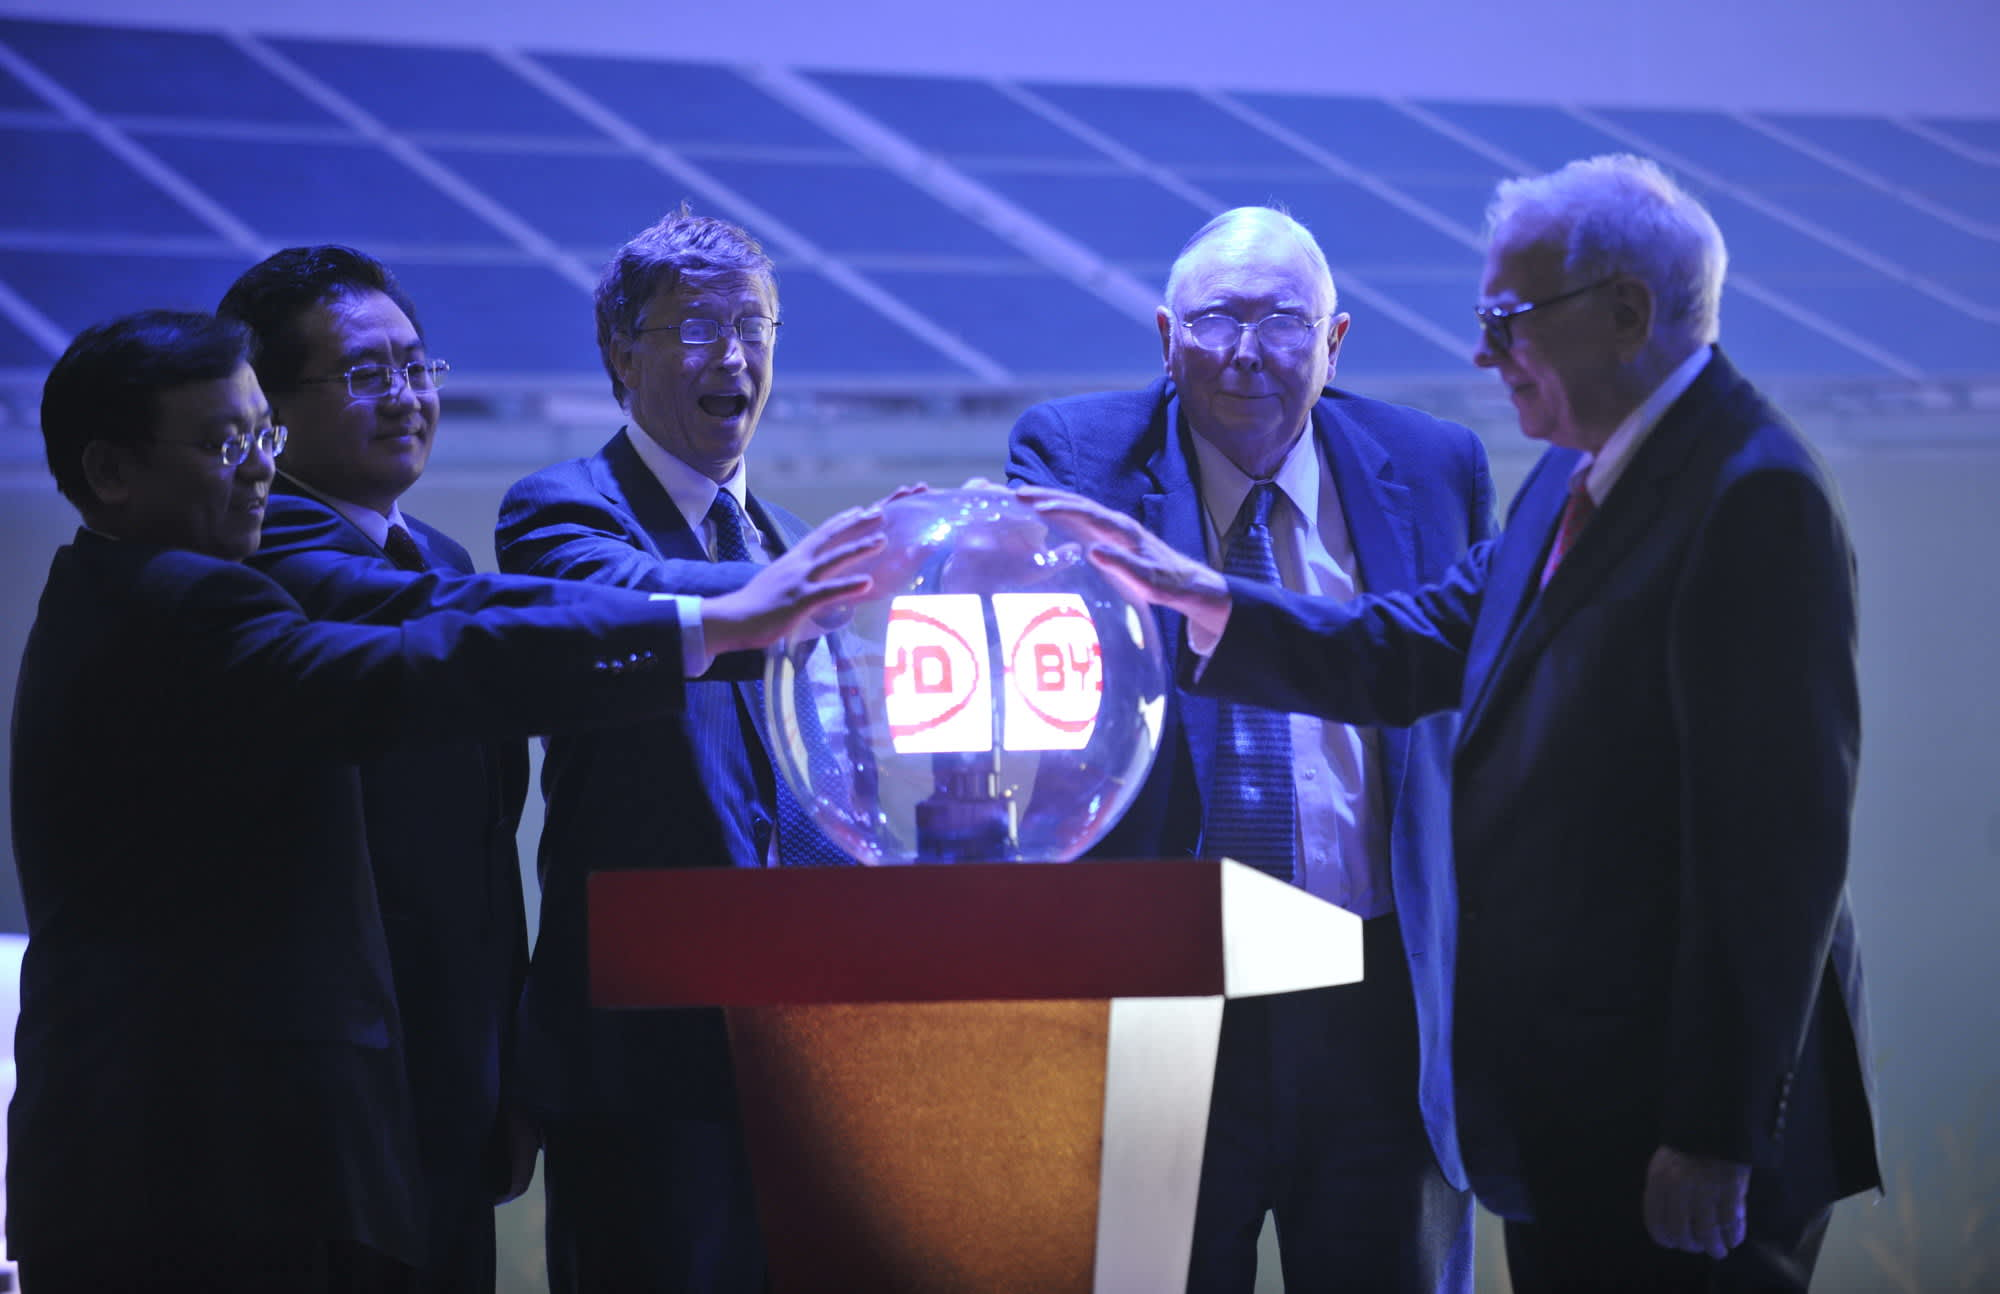 Warren Buffett, Charlie Munger and Bill Gates attend a product launch in Beijing, China for BYD, the electric battery, car, and solar energy company in which Munger long ago led an investment for Berkshire Hathaway.